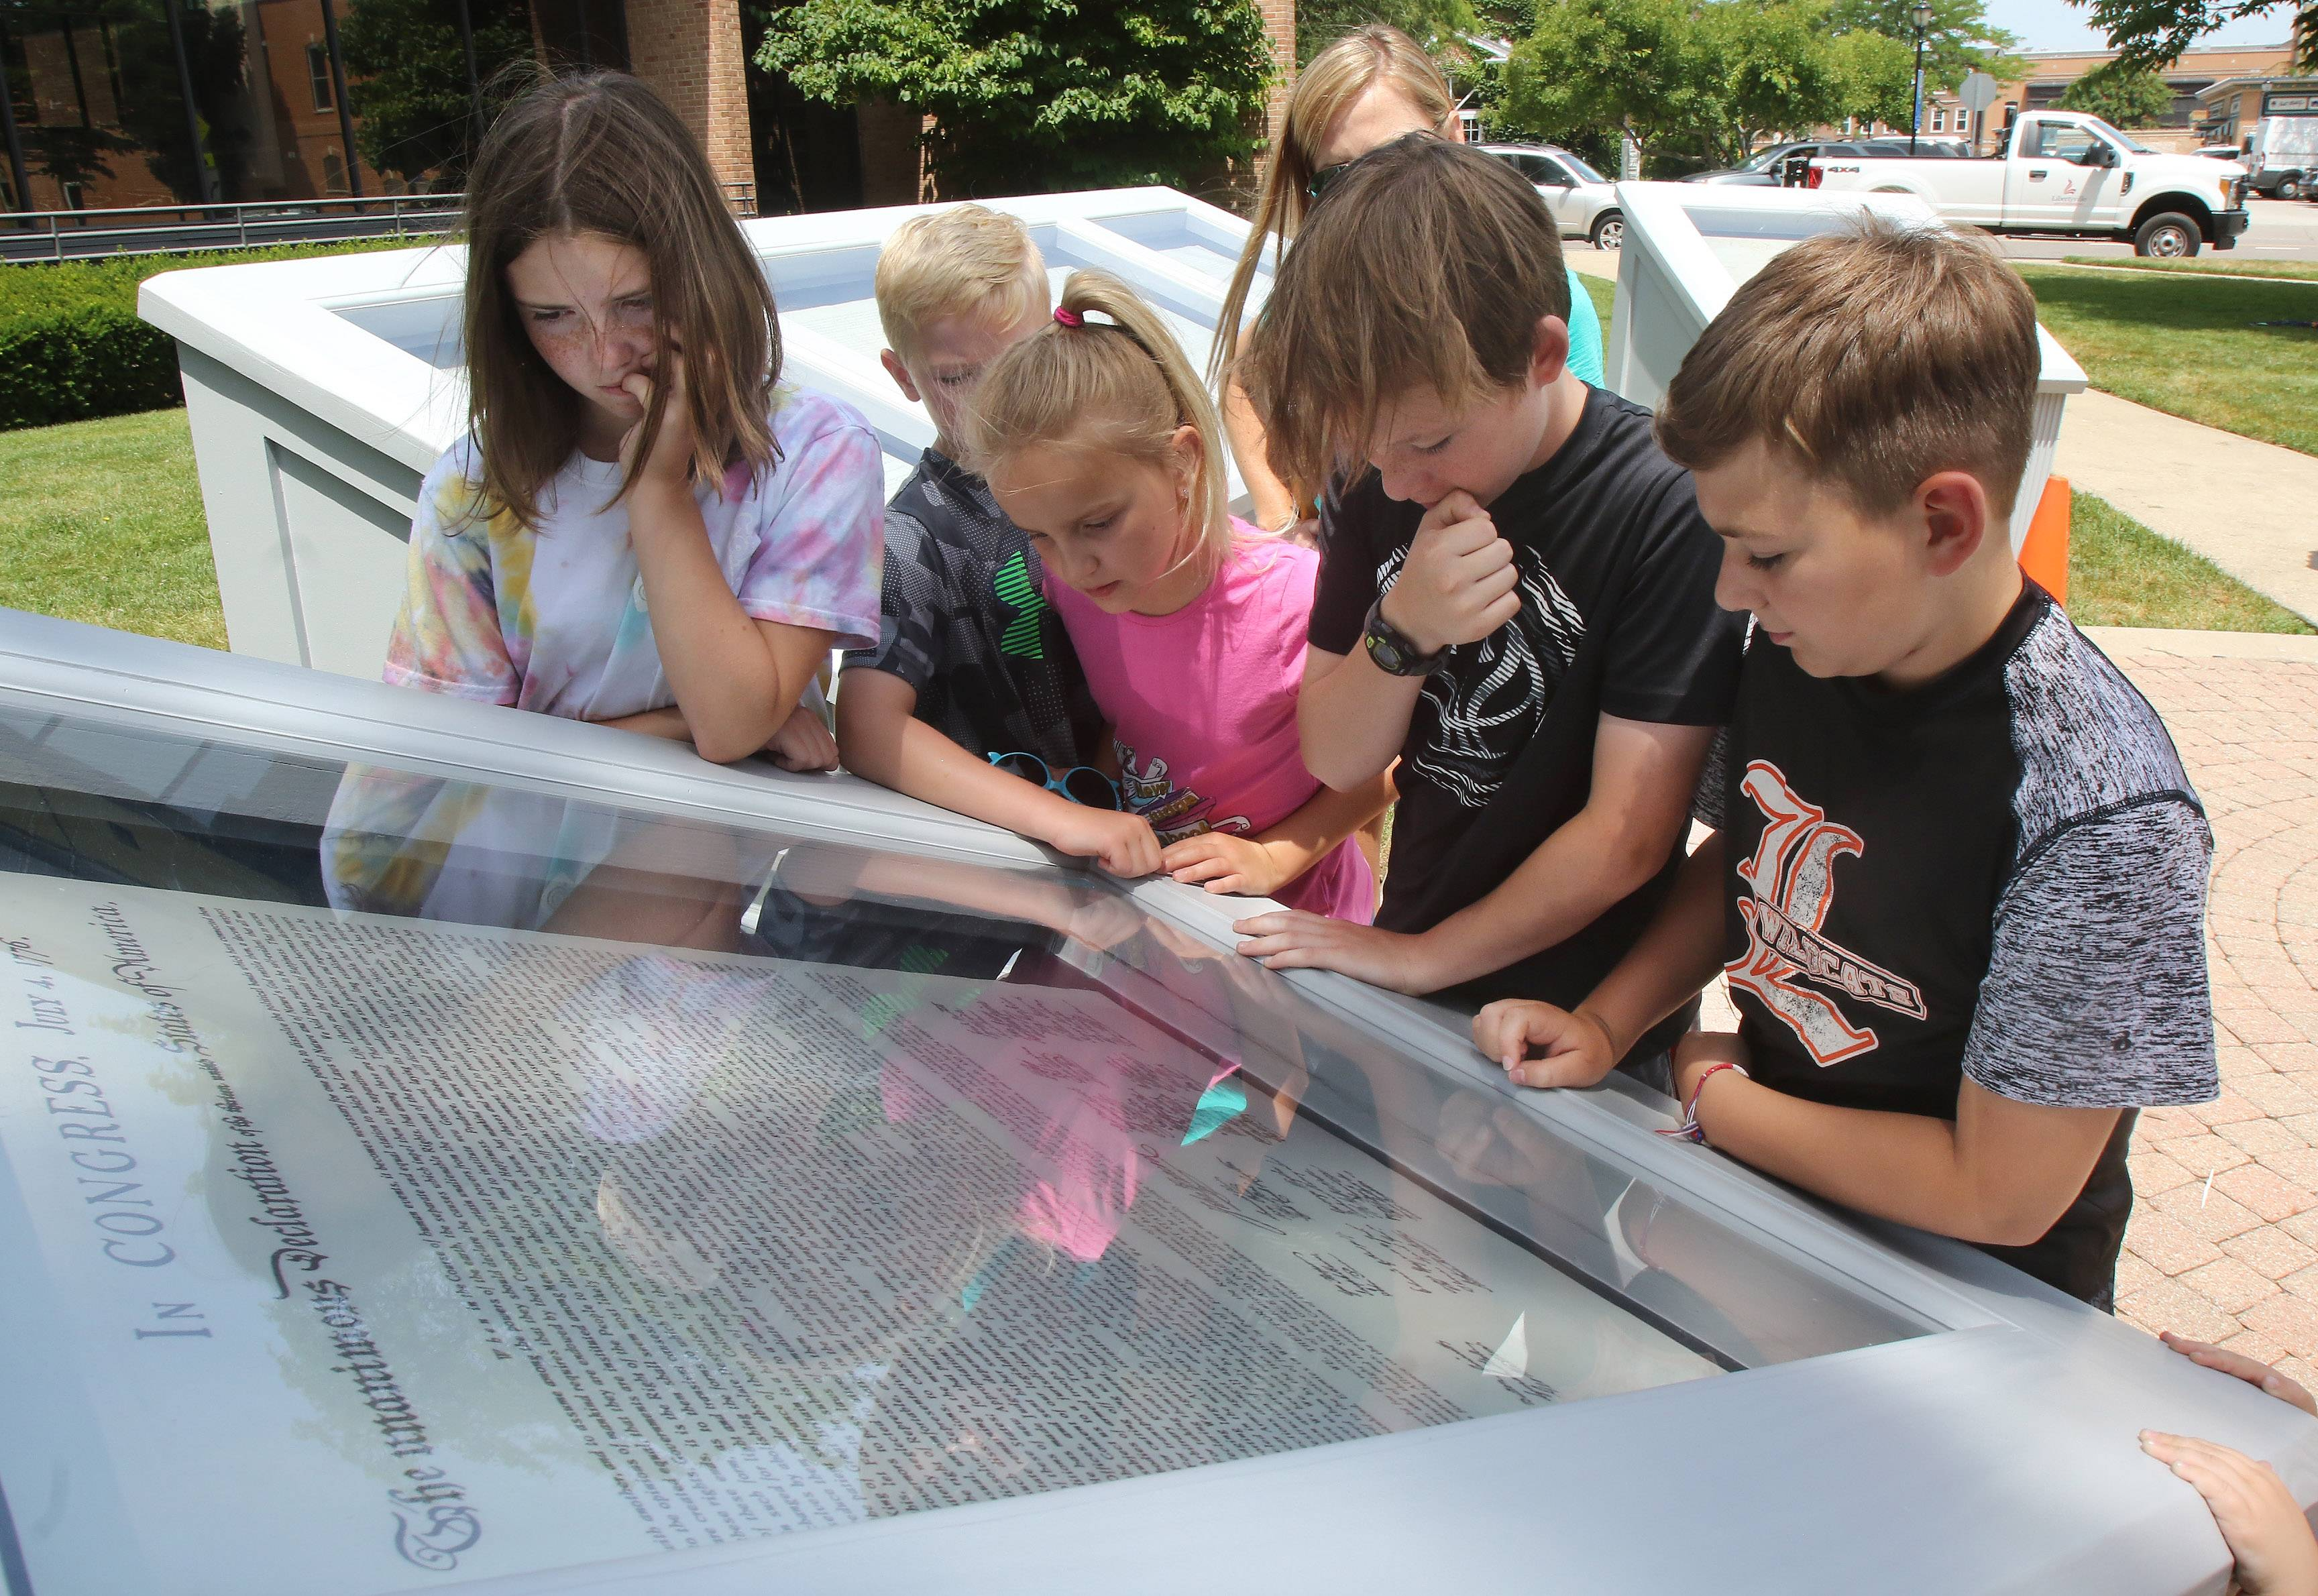 Jackson Groth, right, and Alex Brown, both 11 and from Libertyville, join other children to look at the Declaration of Independence after the Charters of Freedom exhibit was installed Wednesday at Cook Park in Libertyville.